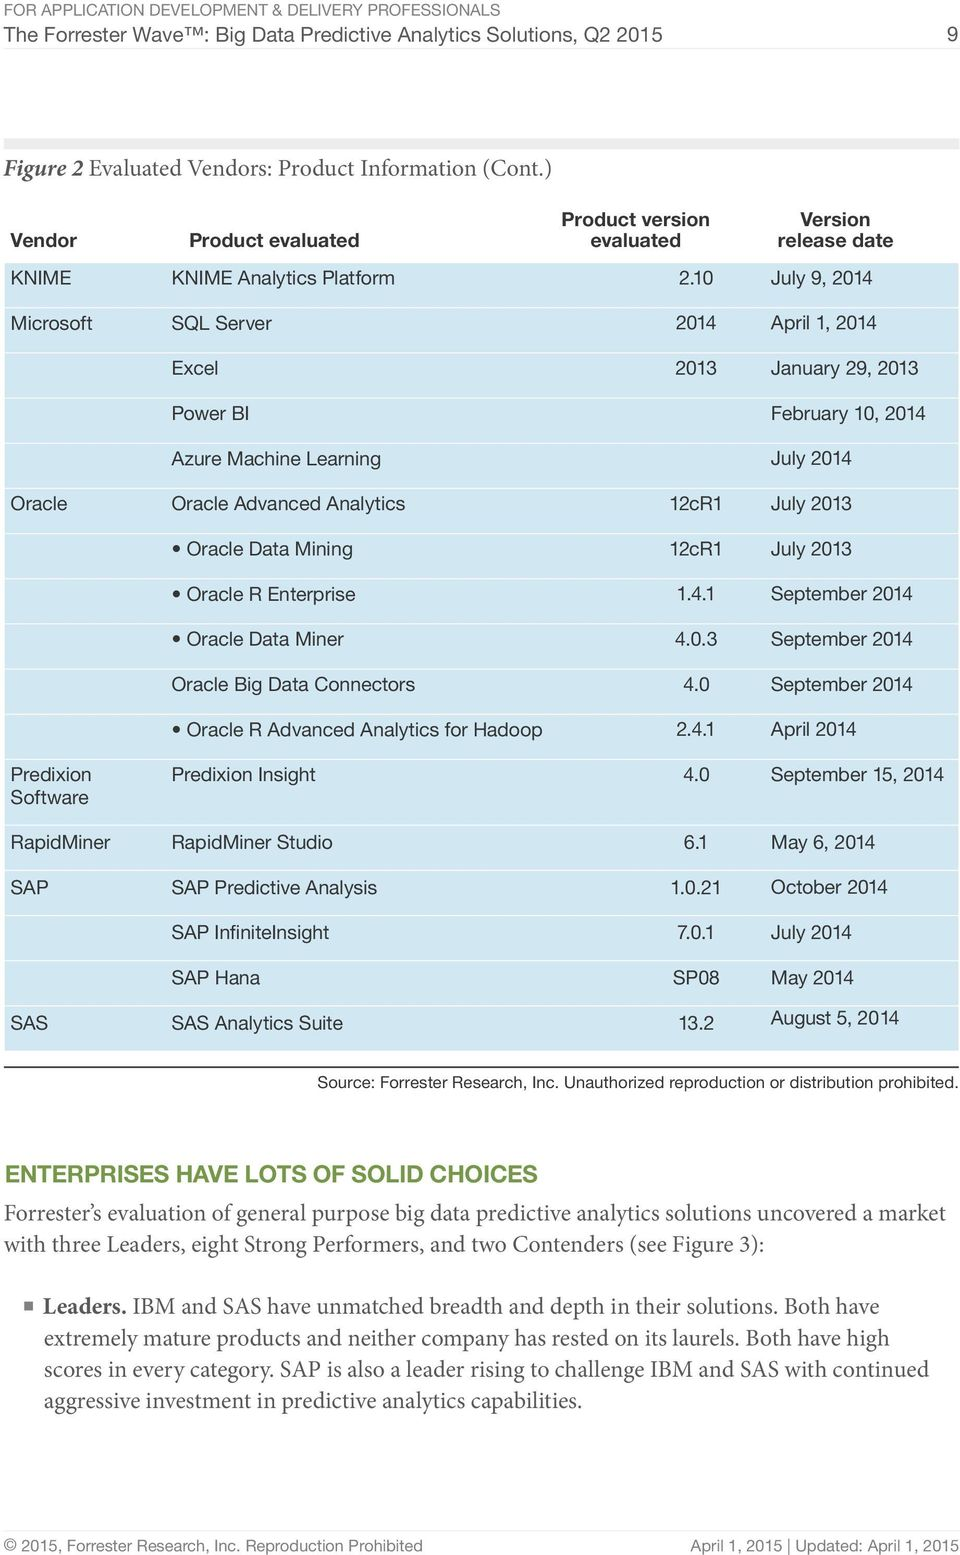 10 July 9, 2014 Microsoft SQL Server 2014 April 1, 2014 Excel 2013 January 29, 2013 Power BI February 10, 2014 Azure Machine Learning July 2014 Oracle Oracle Advanced Analytics 12cR1 July 2013 Oracle